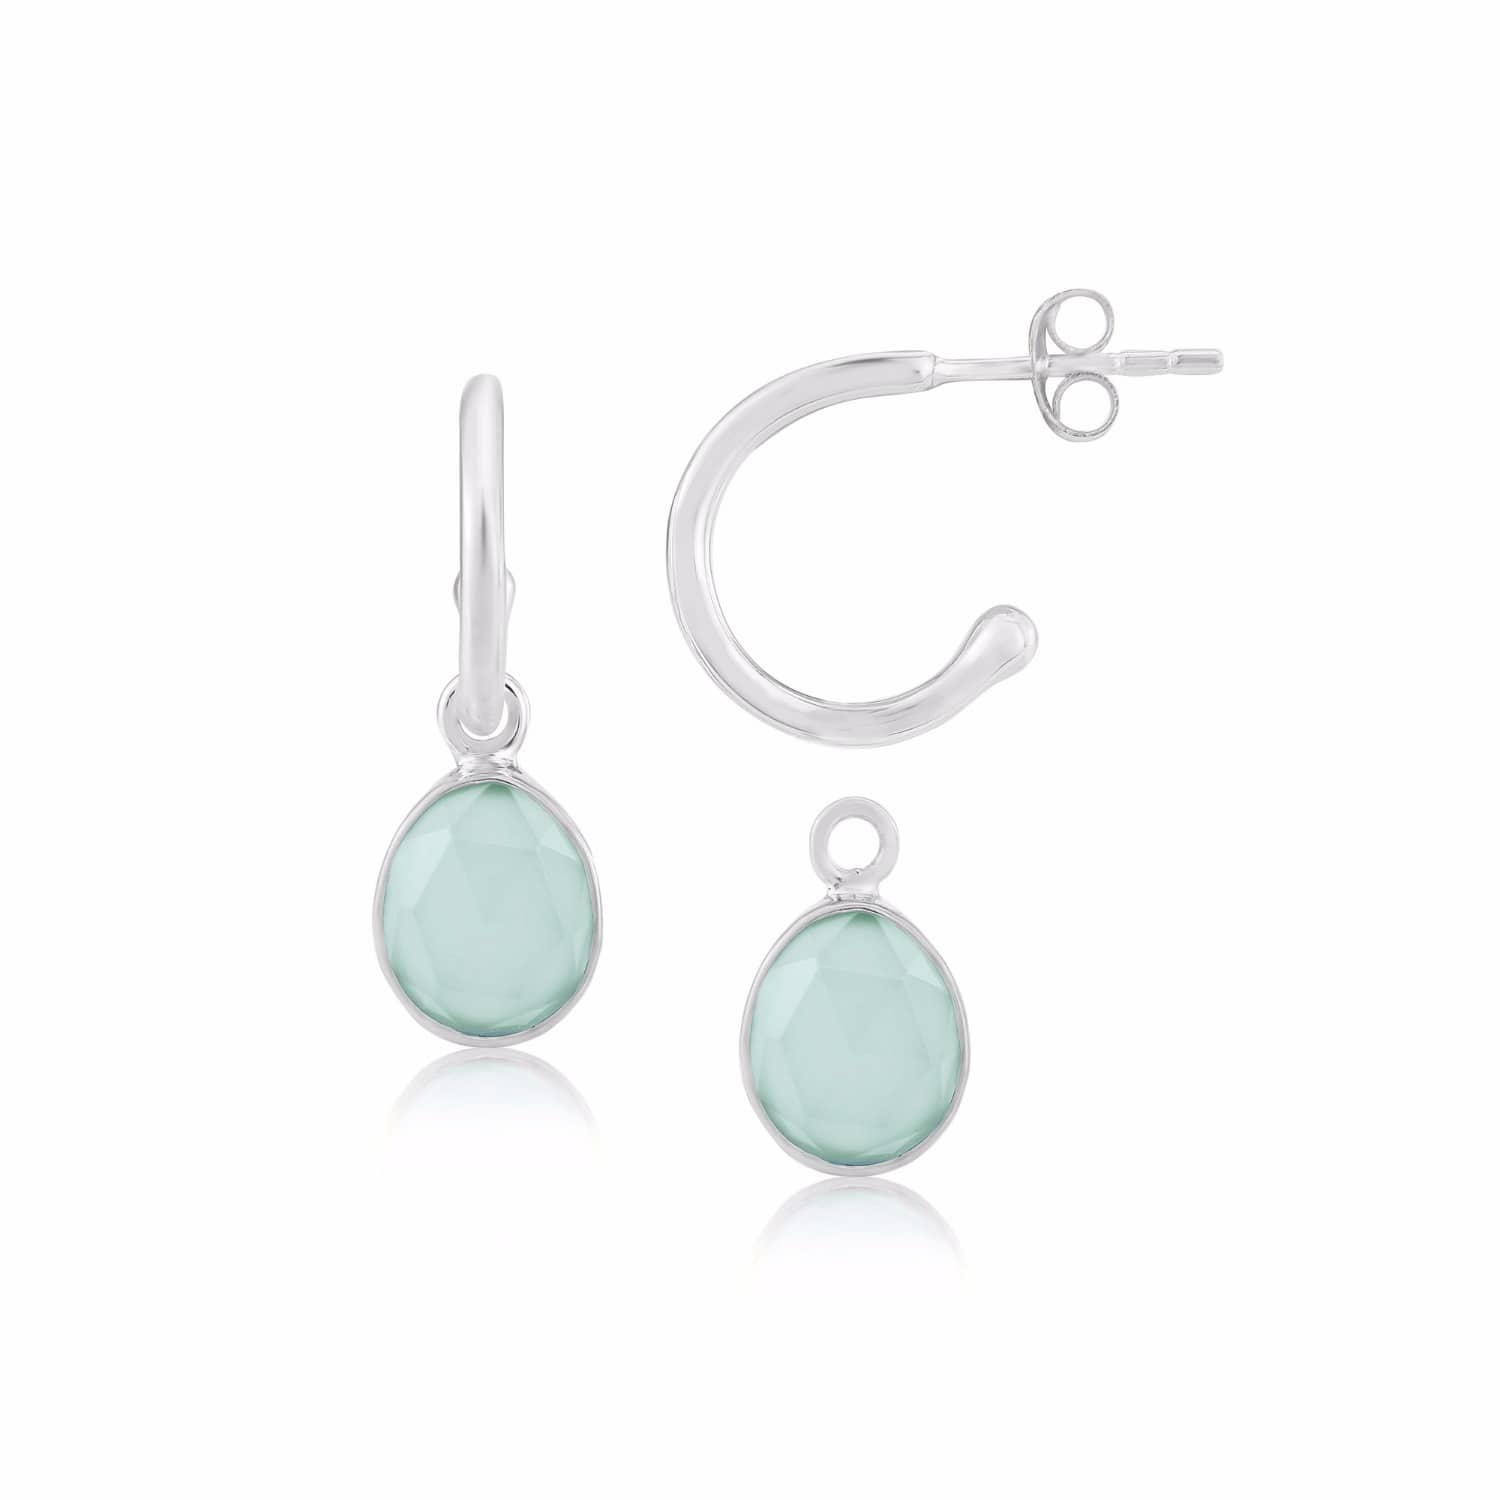 ear interchangeable studs fbl earrings bob silver perspex shop collection frillybylily blue